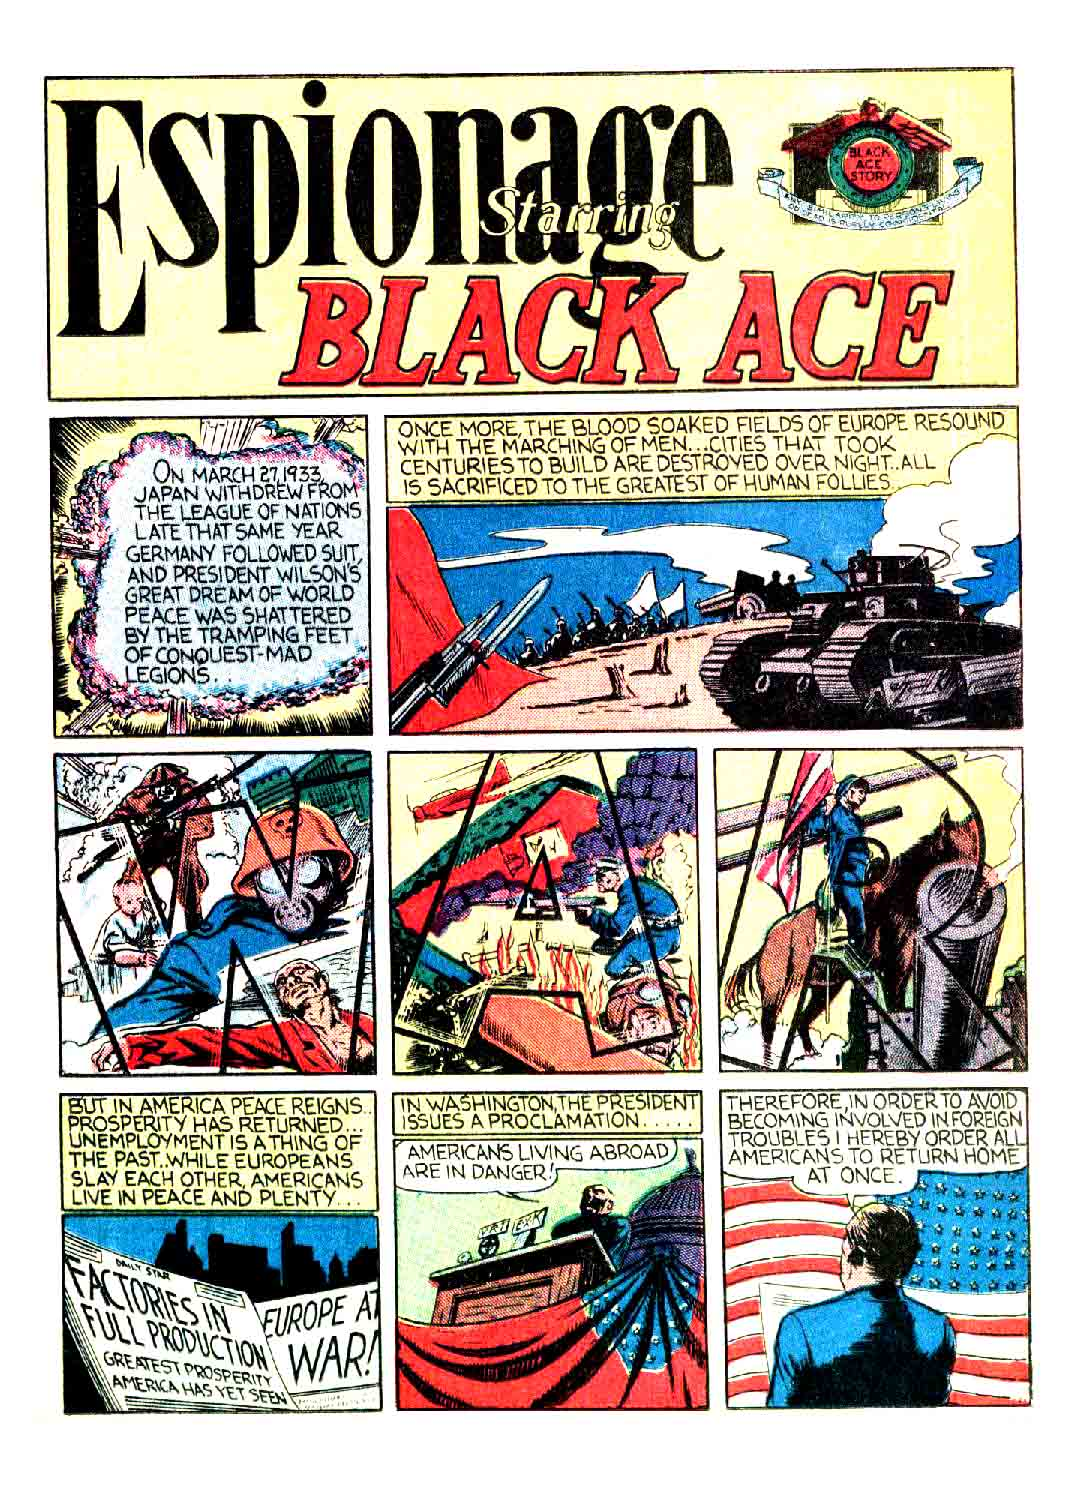 Espionnage Staring black Ace from Smash Comics #3